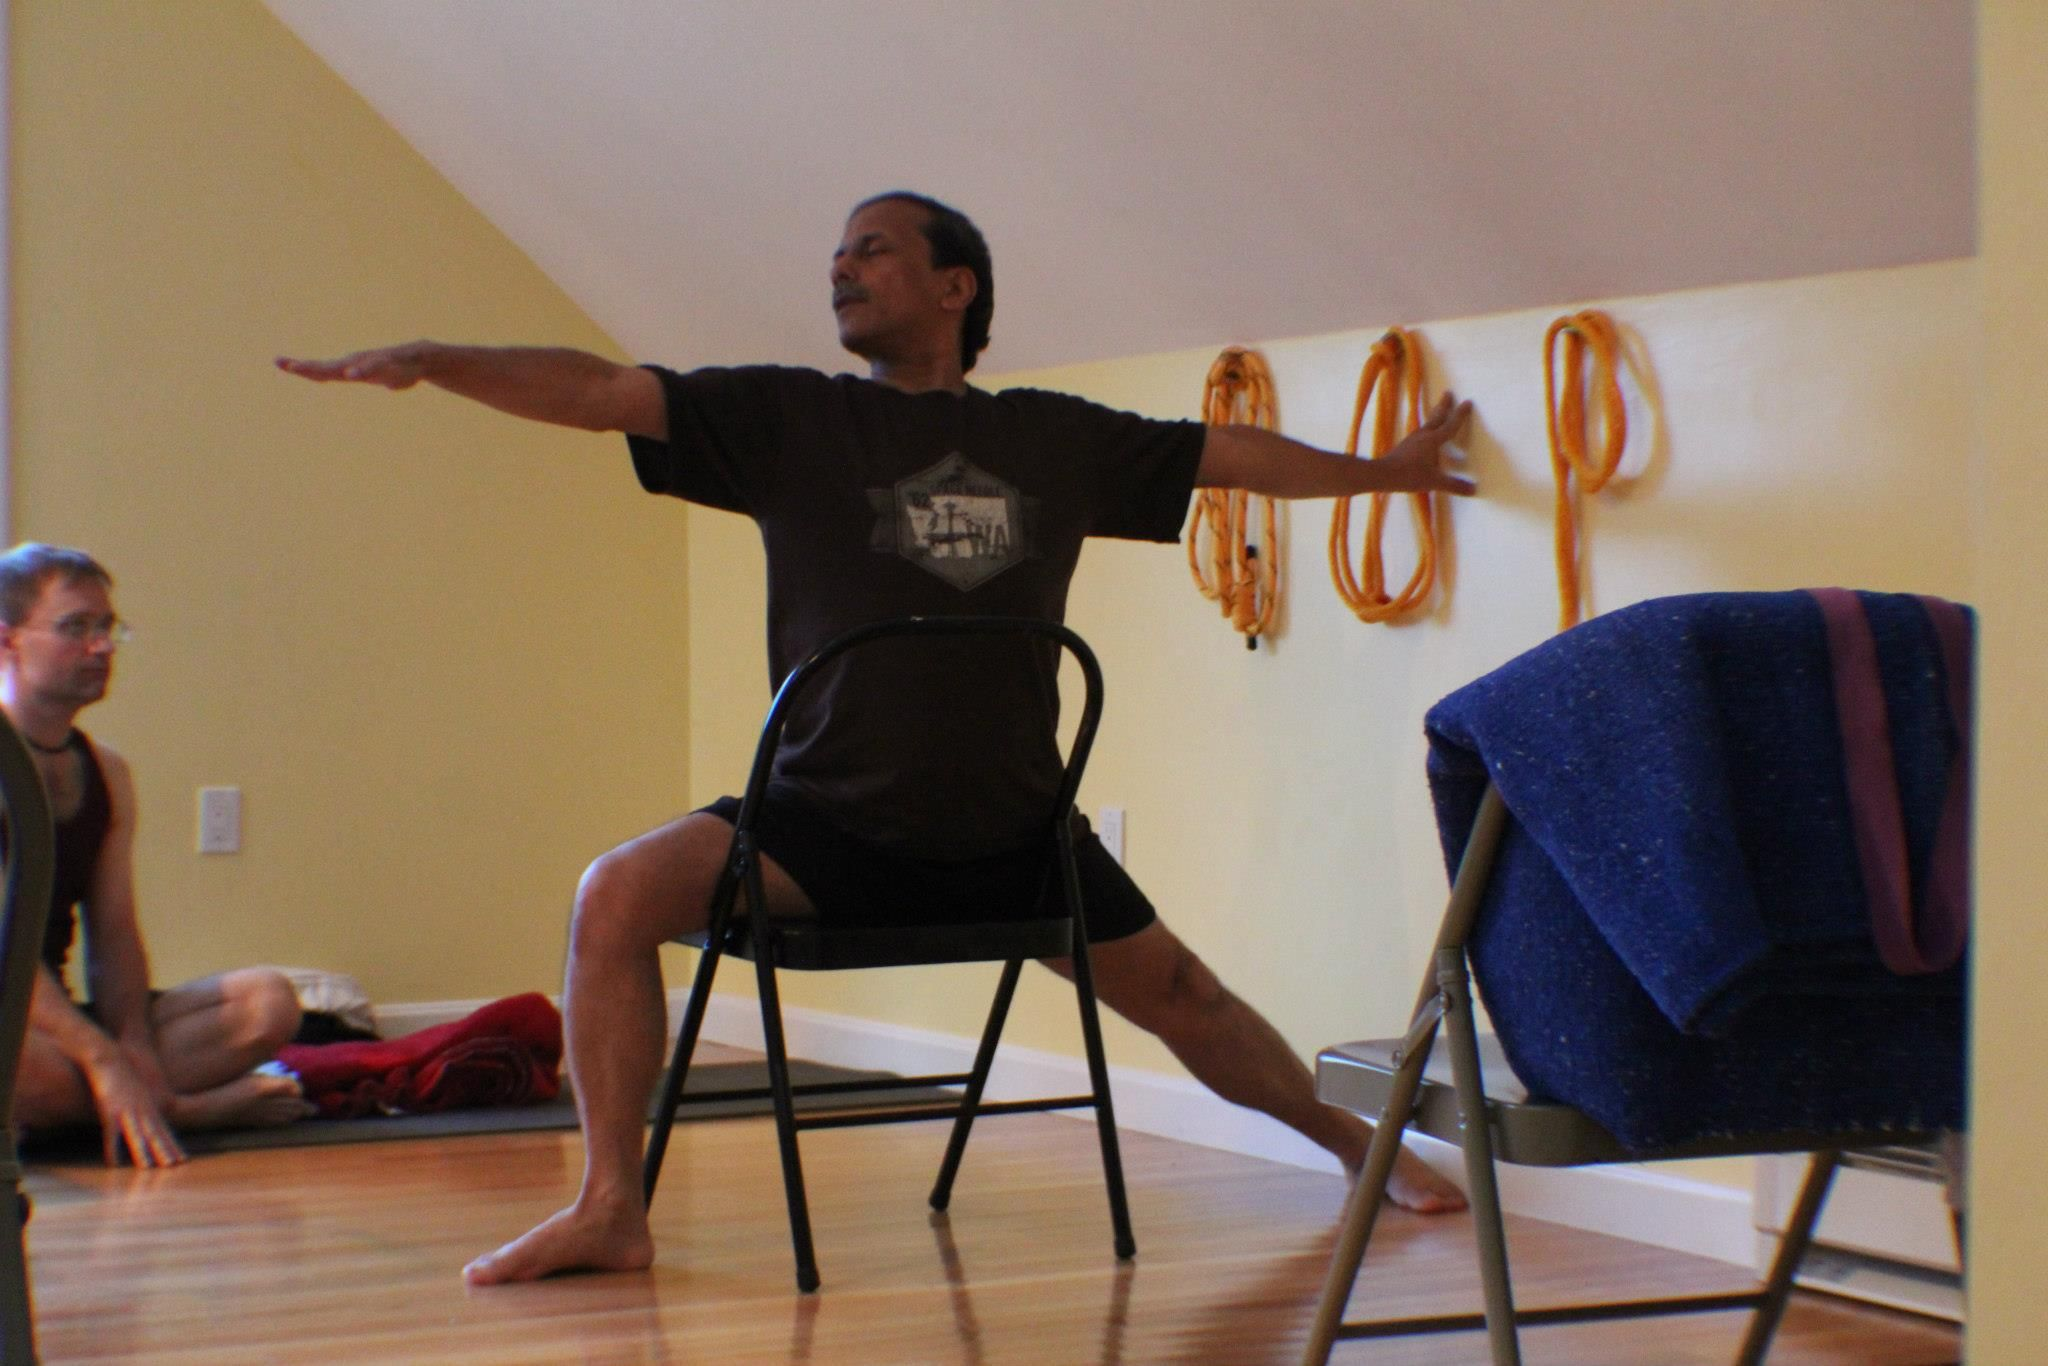 Virabhadrasana 2 iyengar yoga chair standing poses for Chaise yoga iyengar